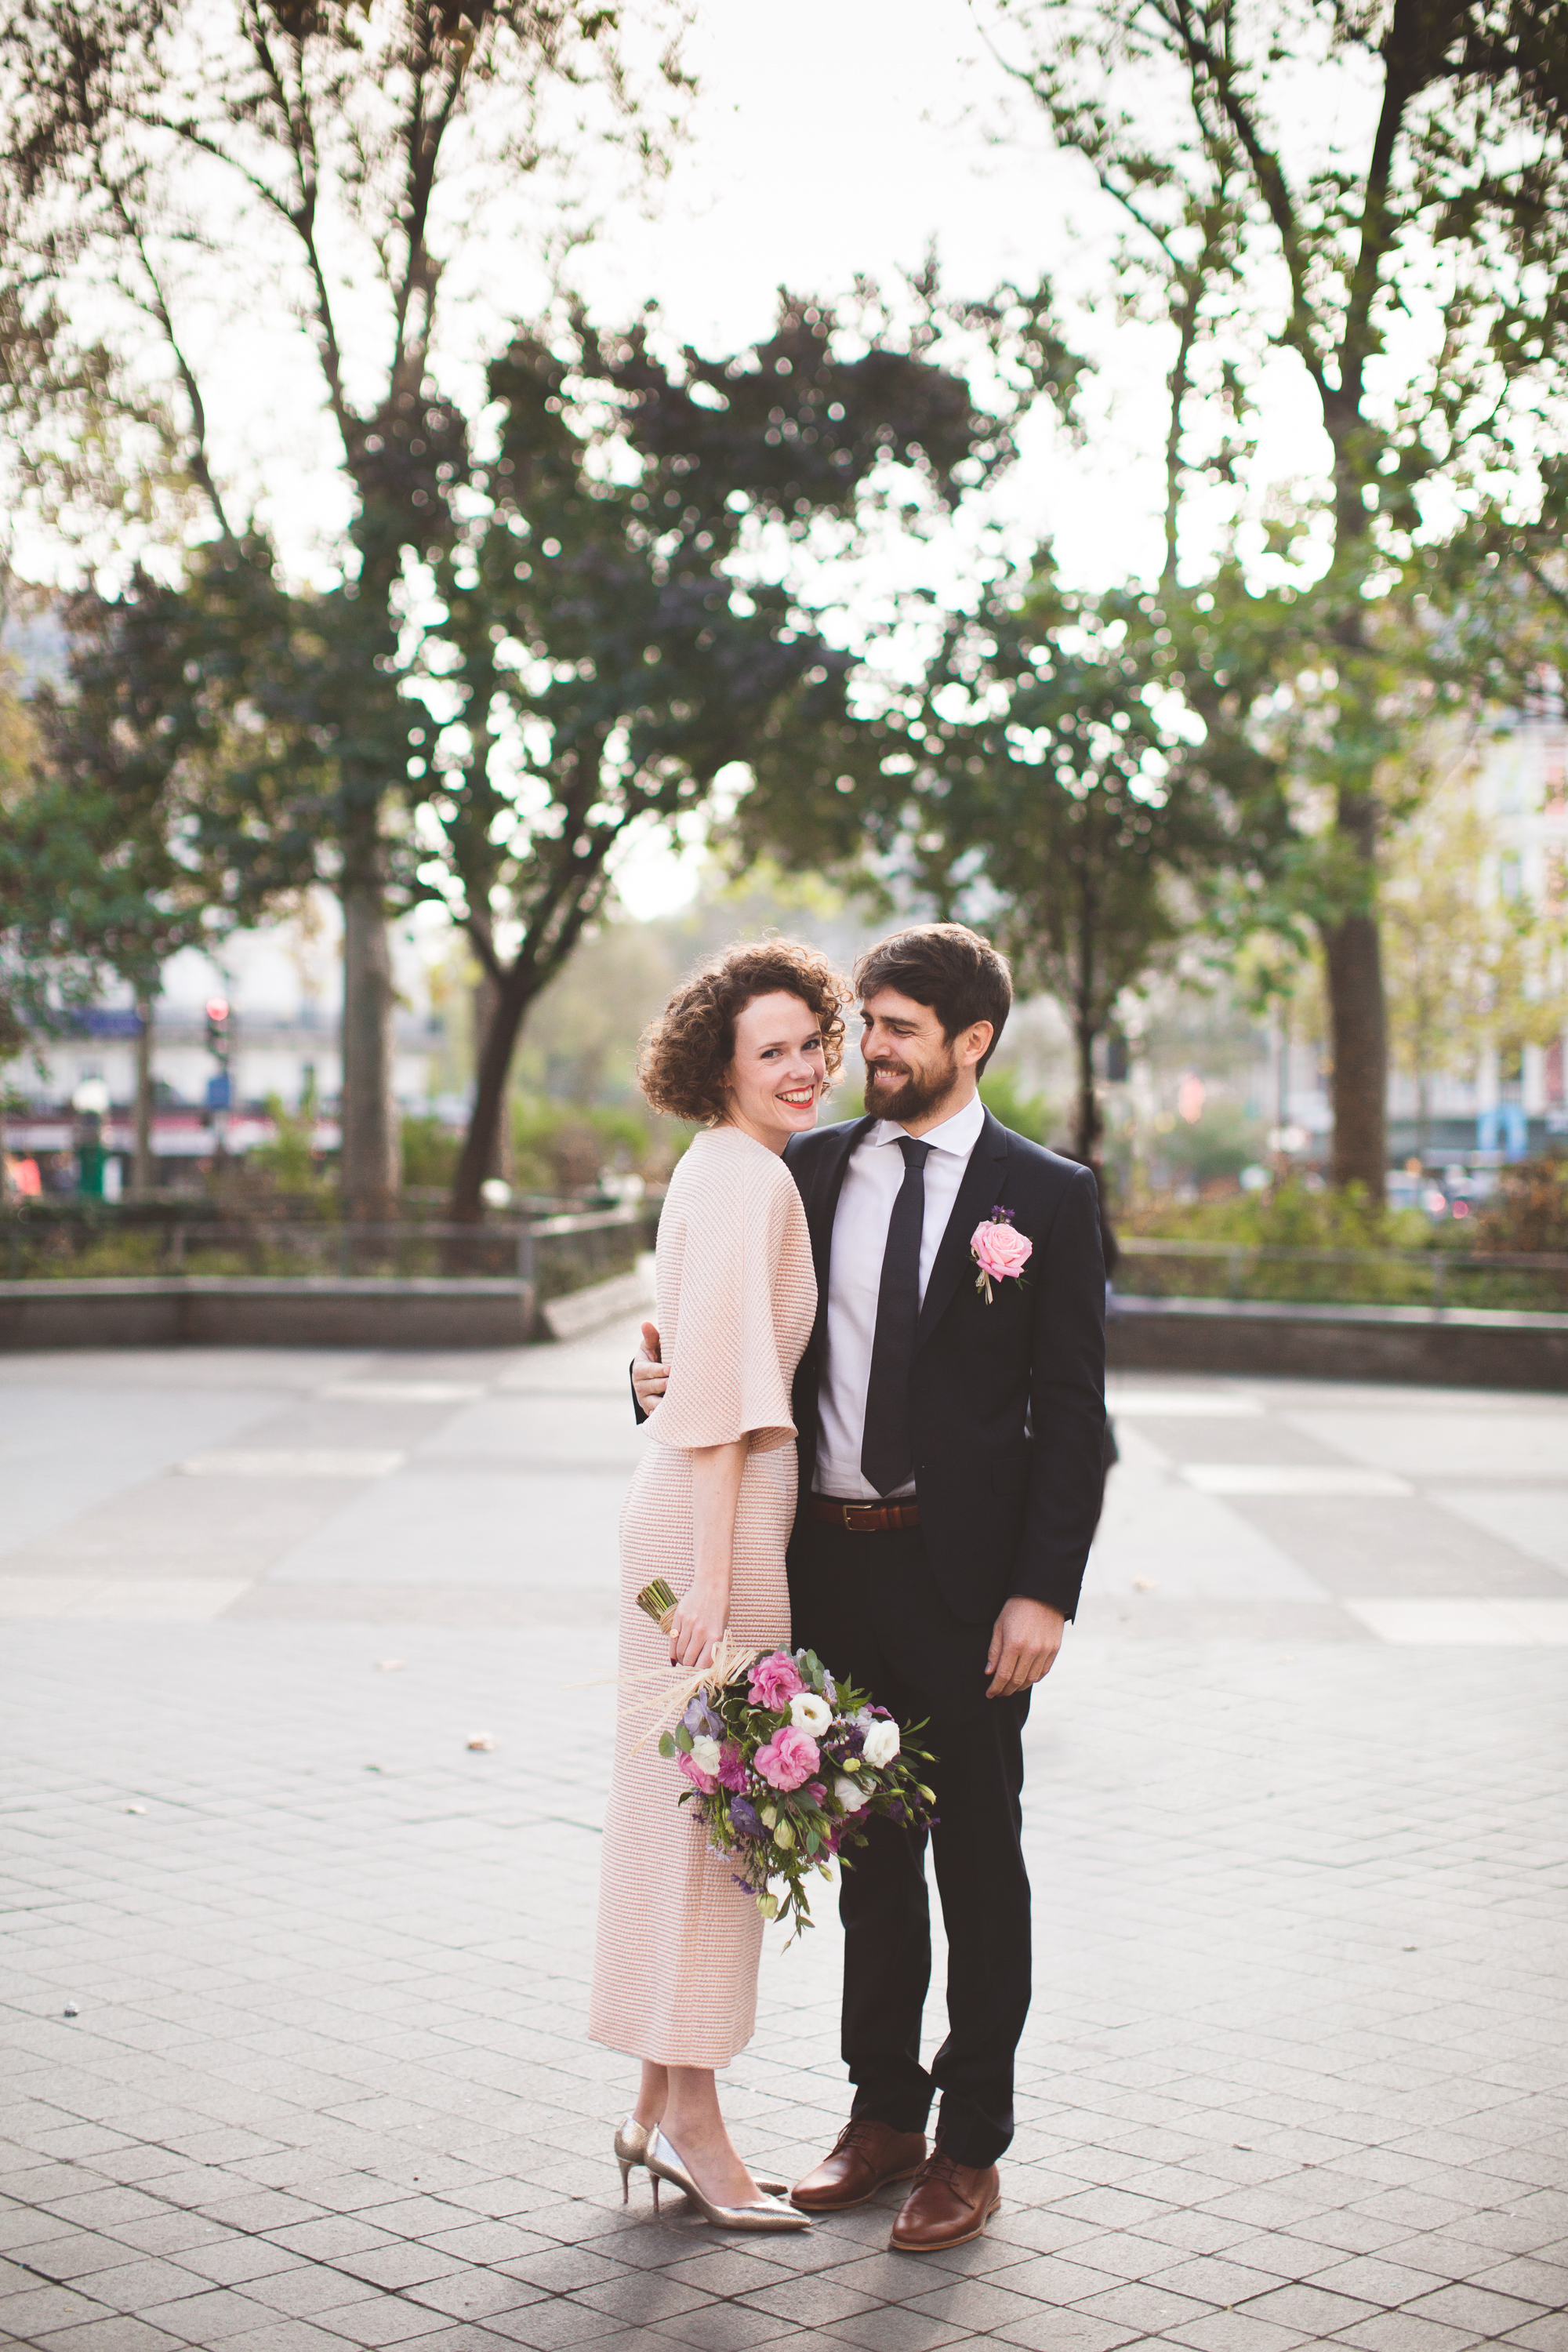 Emma&Nico_WeddingParis_by_UlaBlocksage-11.jpg